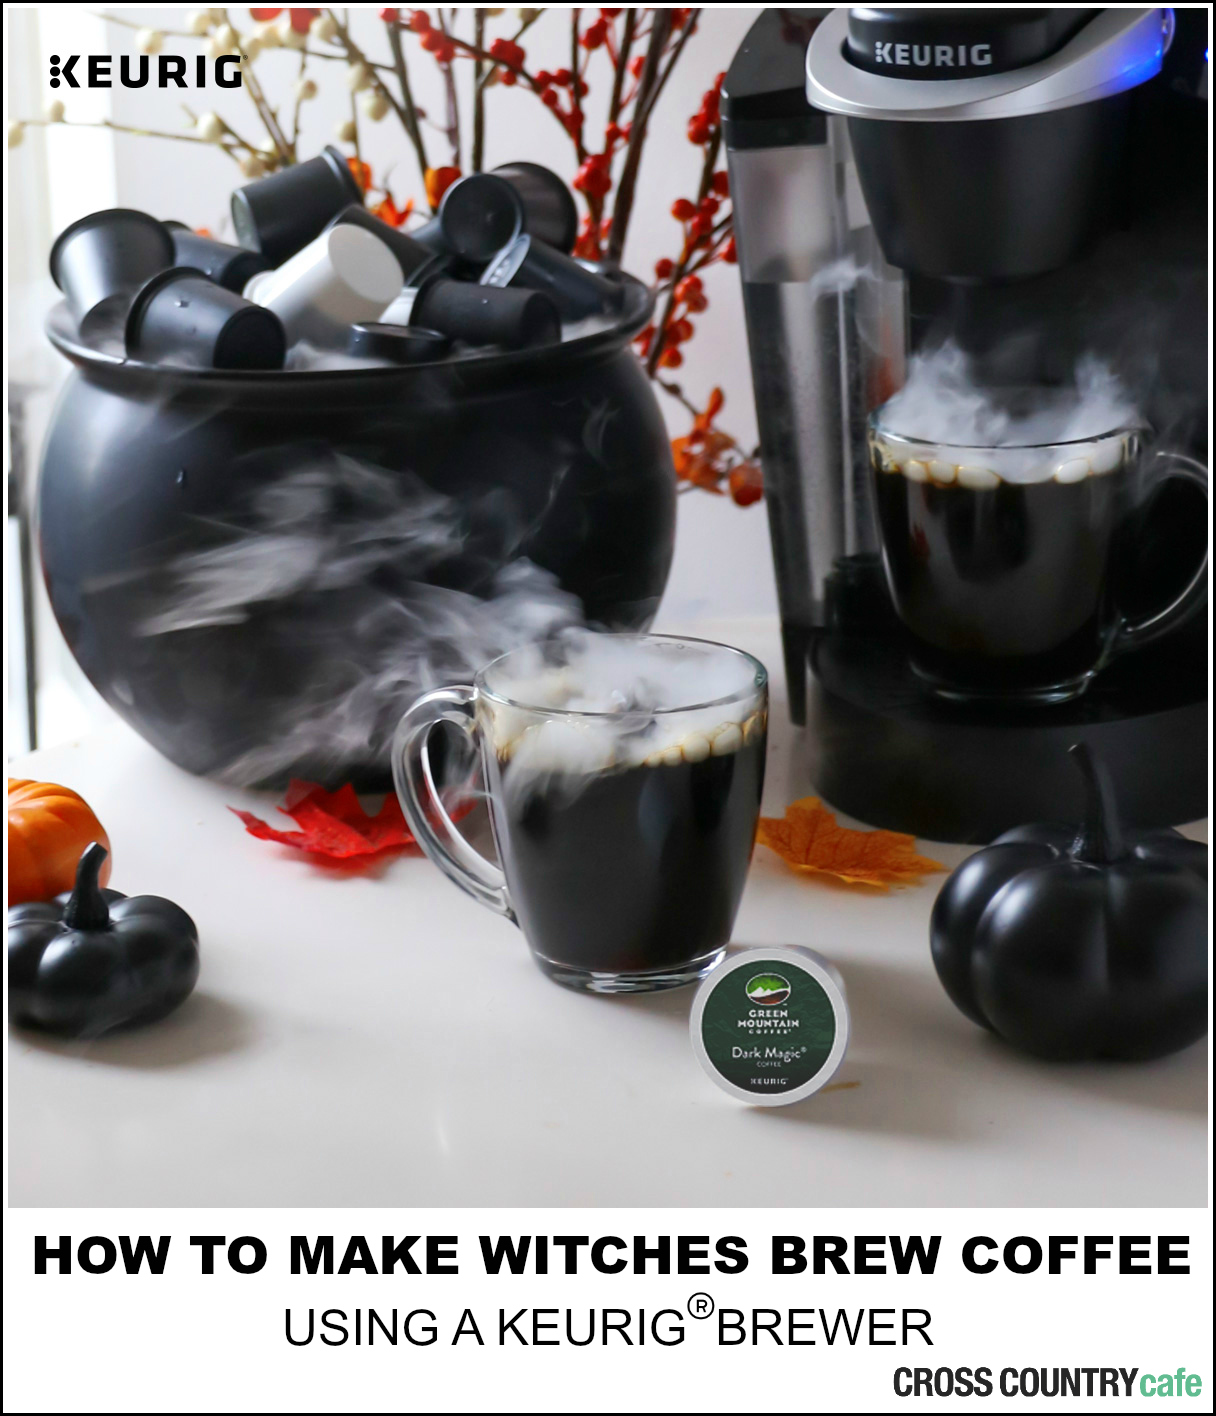 How to make witches brew coffee